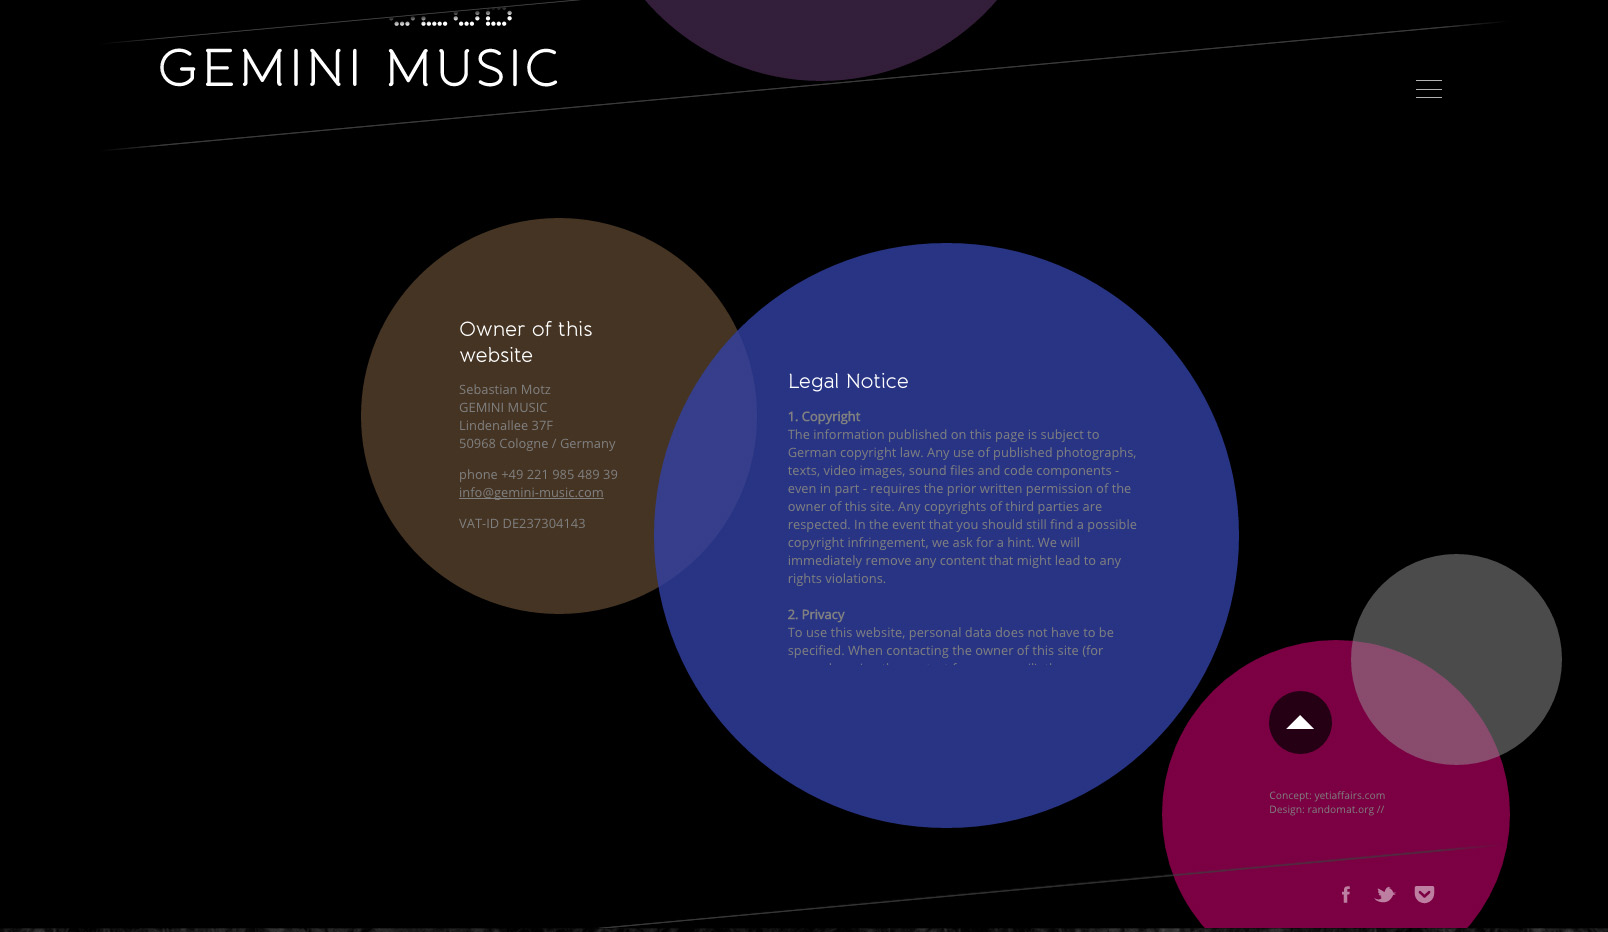 Gemini Music website